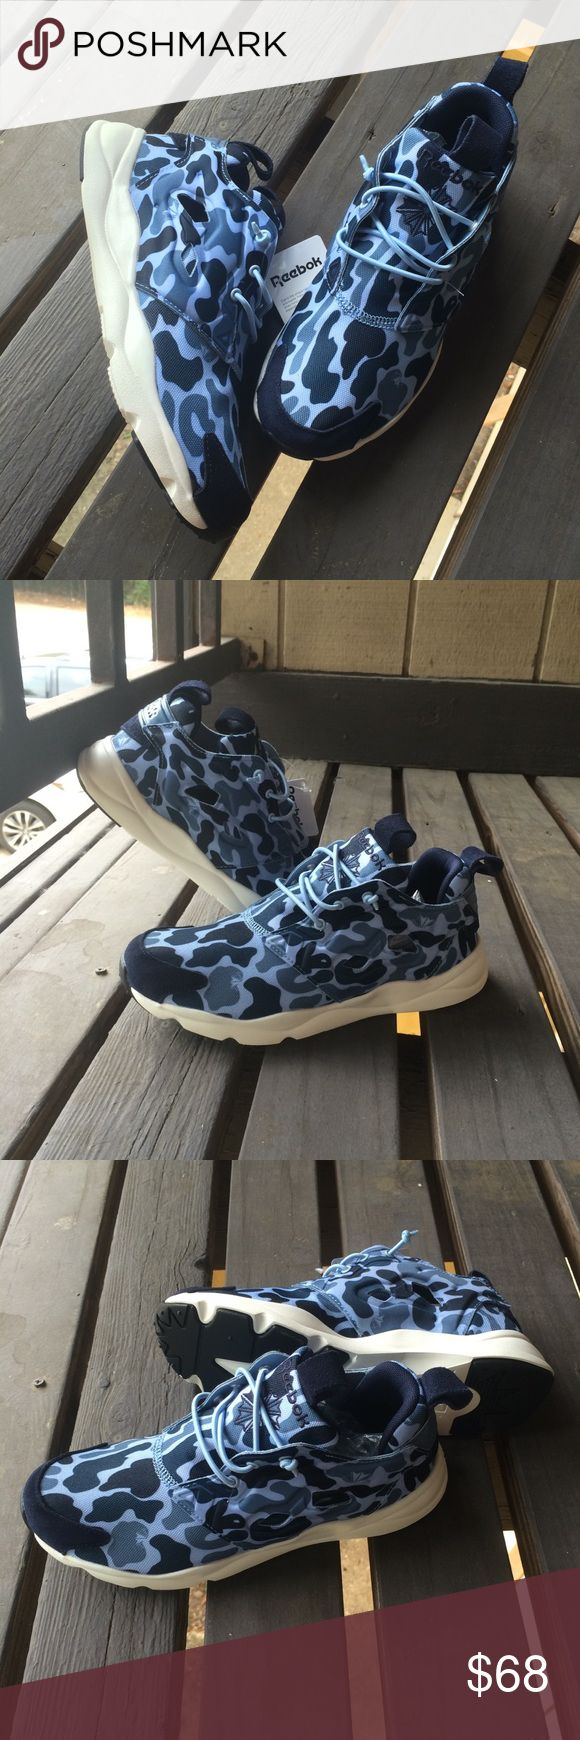 Reebok Furylite CAMO Print Shoes Brand New! Special Camo Patterns and lightweight shoes Men's size 6.5 fits Women's 8 Reebok Shoes Sneakers